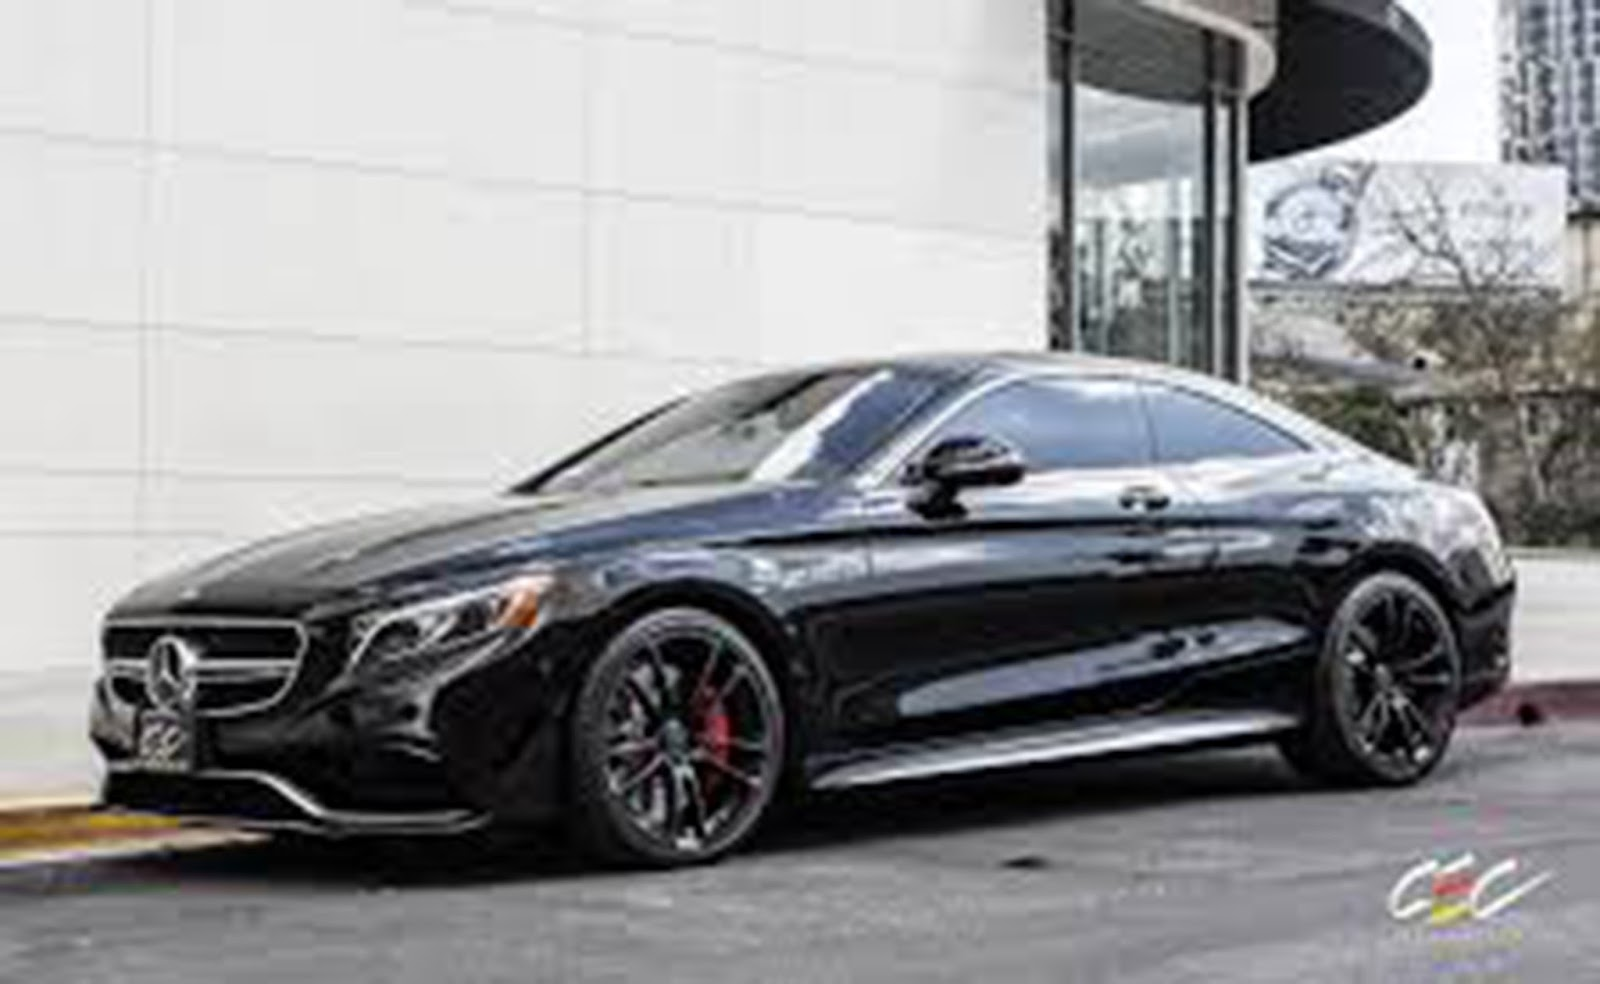 ... On This List Is Maybach 62 Which Has A 6 Liter V12 Engine And 5 Speed  Automatic Transmission System. The Superb Features Of This Car Make It  Truly World ...